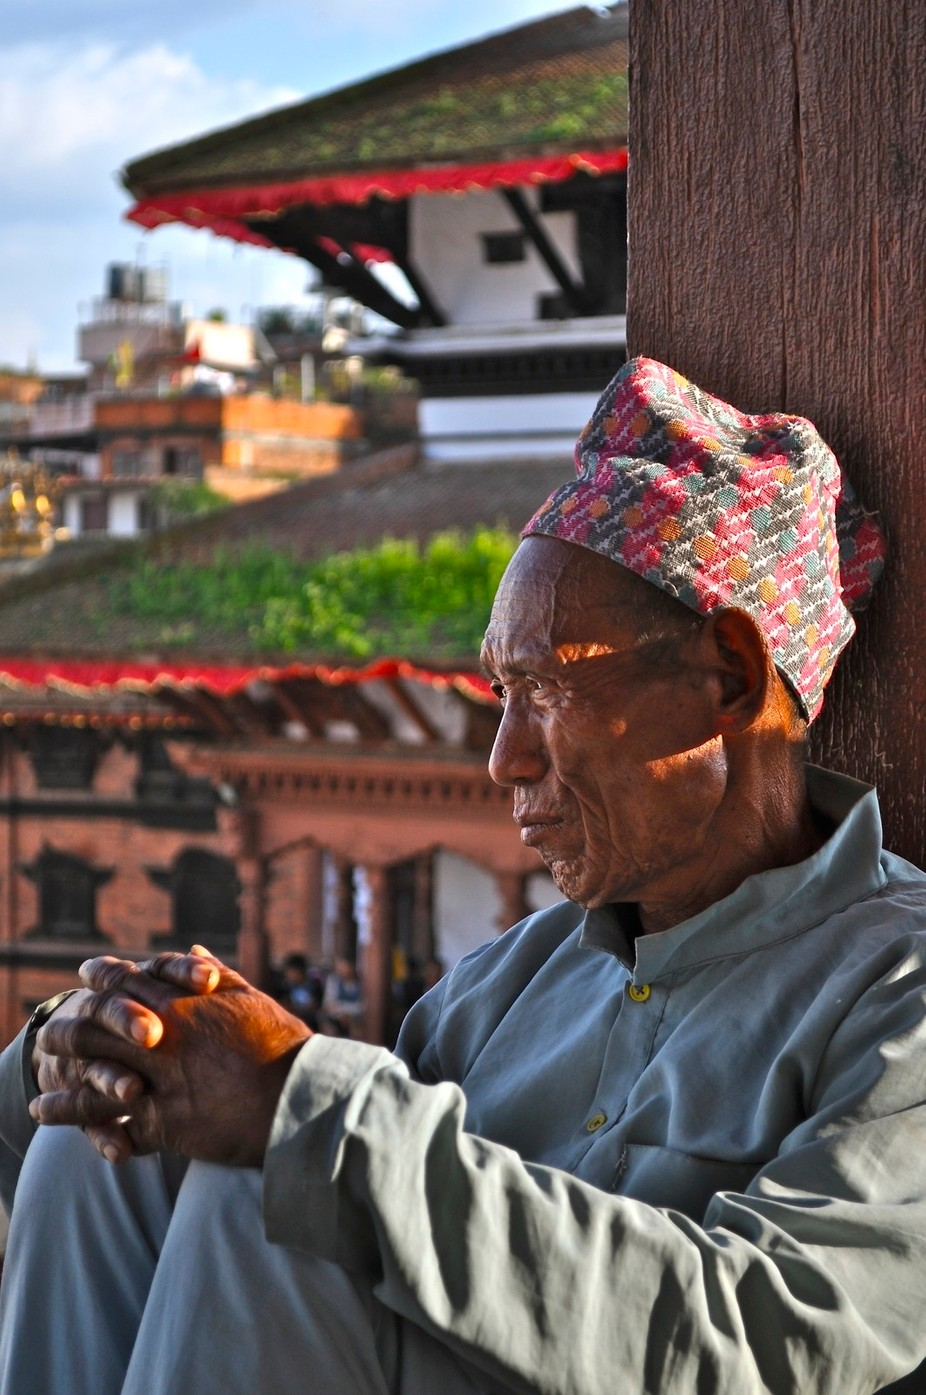 Amongst the crowds and the noise, this old man sat and watched the world go by.